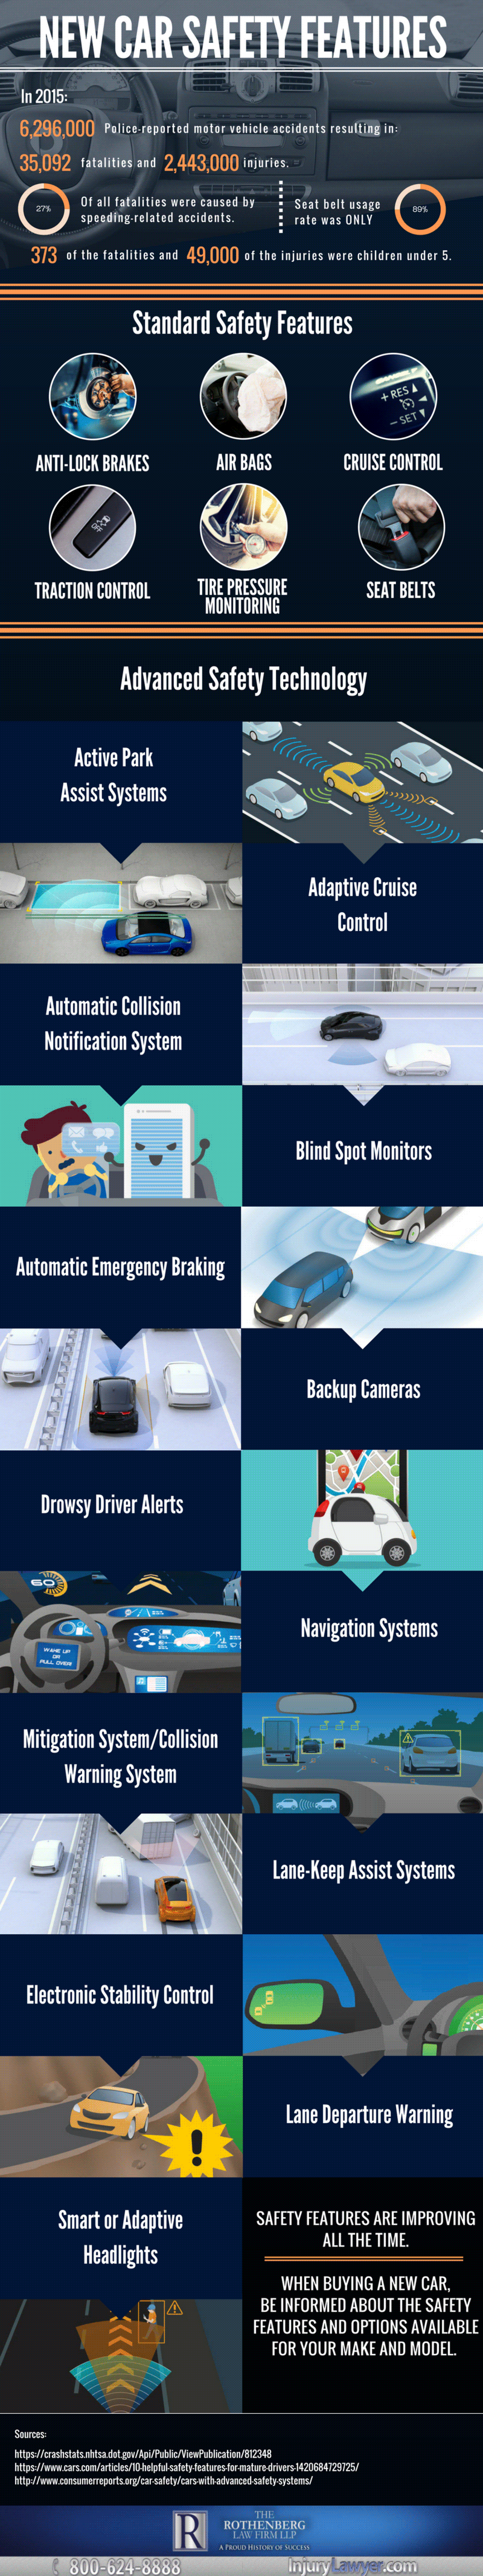 New car safety features Infographic